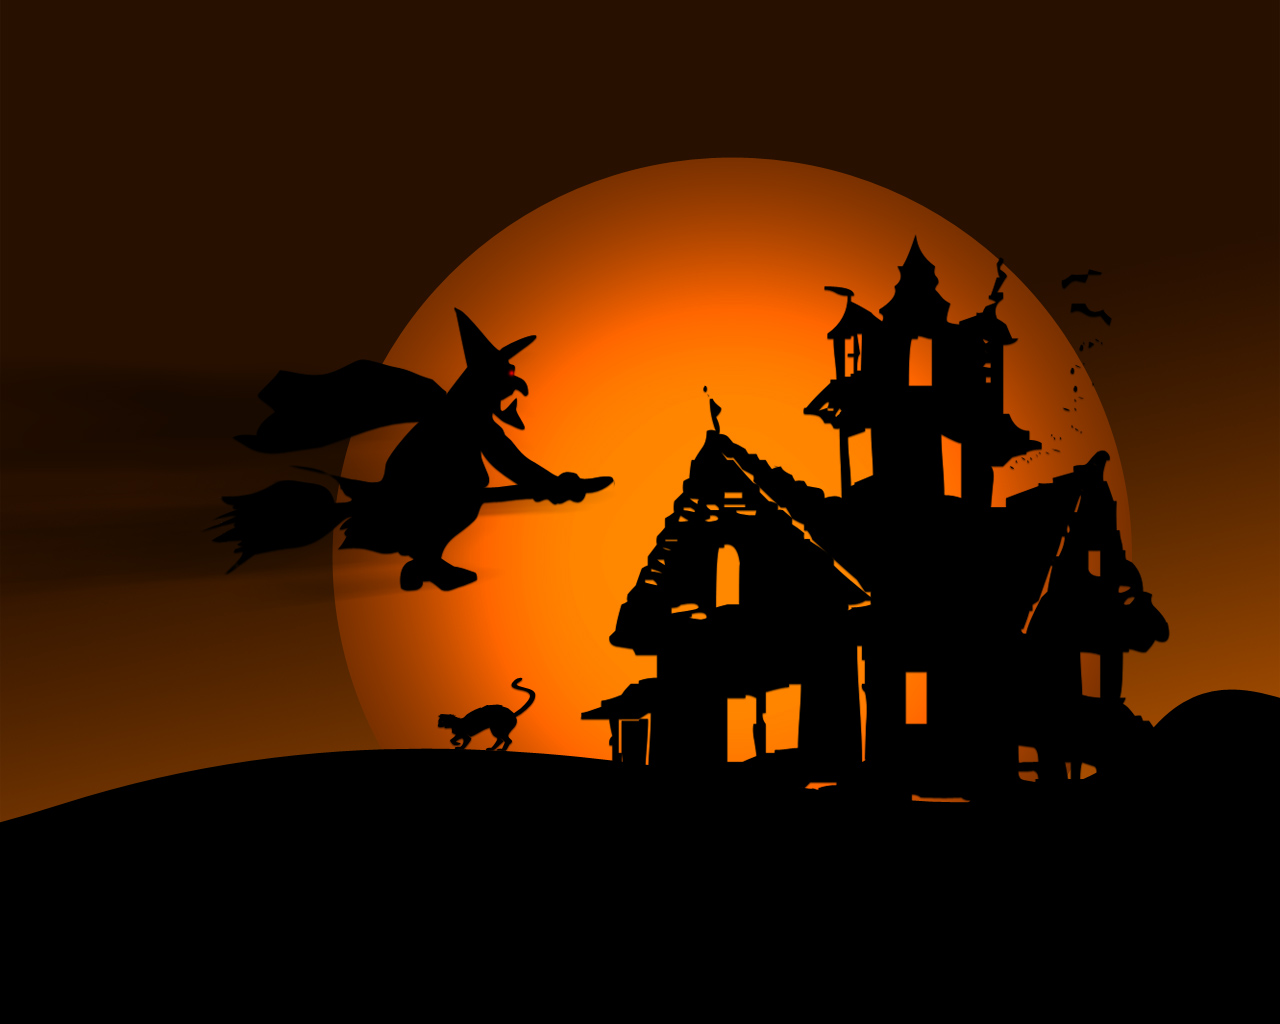 http://3.bp.blogspot.com/-vQB_lzpFXKA/TdXwlg75QHI/AAAAAAAAAAM/wiTqZJT_mLc/s1600/halloween+wallpaper+halloween_wallpaper-4809.jpg